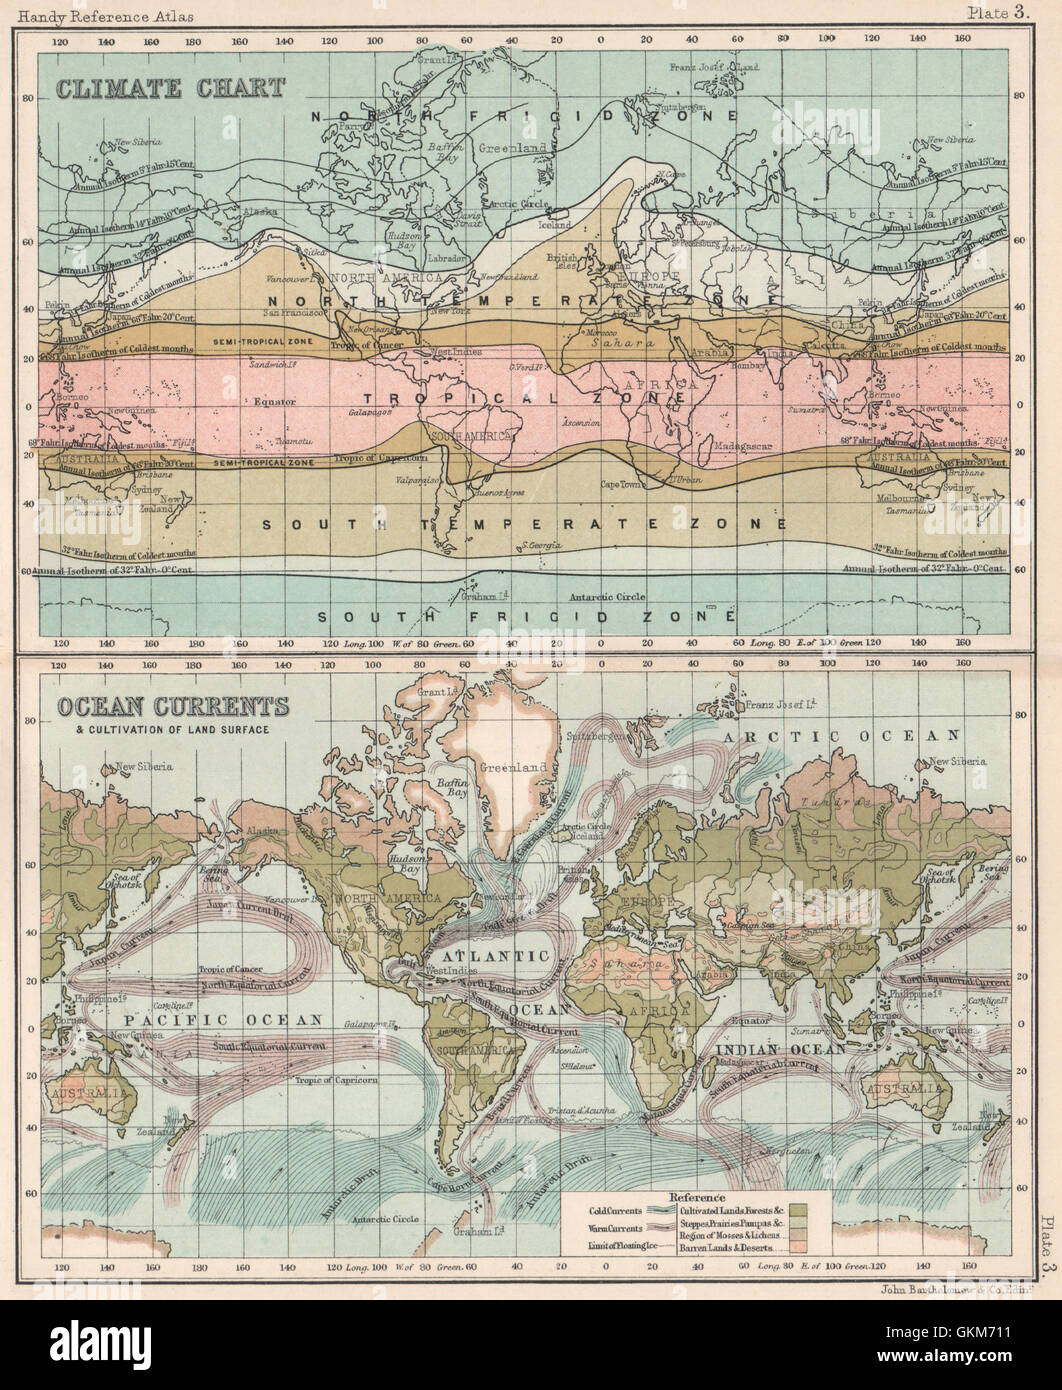 World Map With Currents.World Climate Chart Ocean Currents Bartholomew 1904 Antique Map